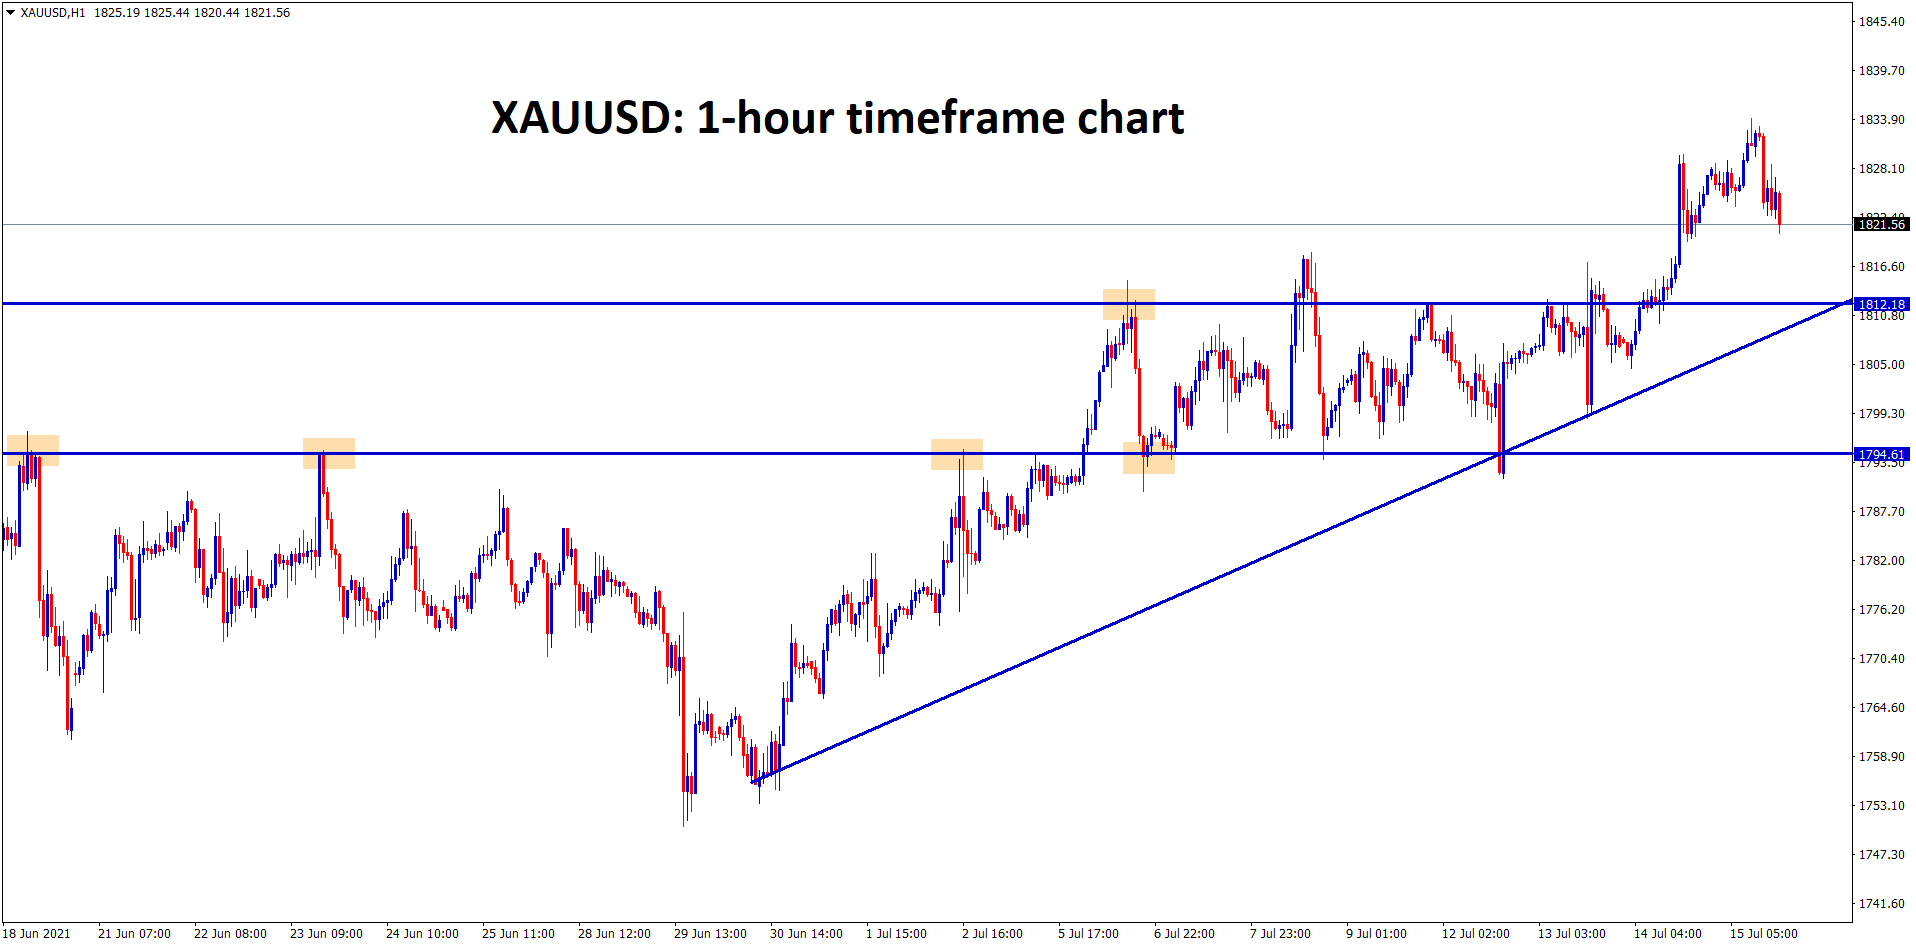 XAUUSD price is falling now to retest the recent broken resistance and higher low line which may act as temporary support